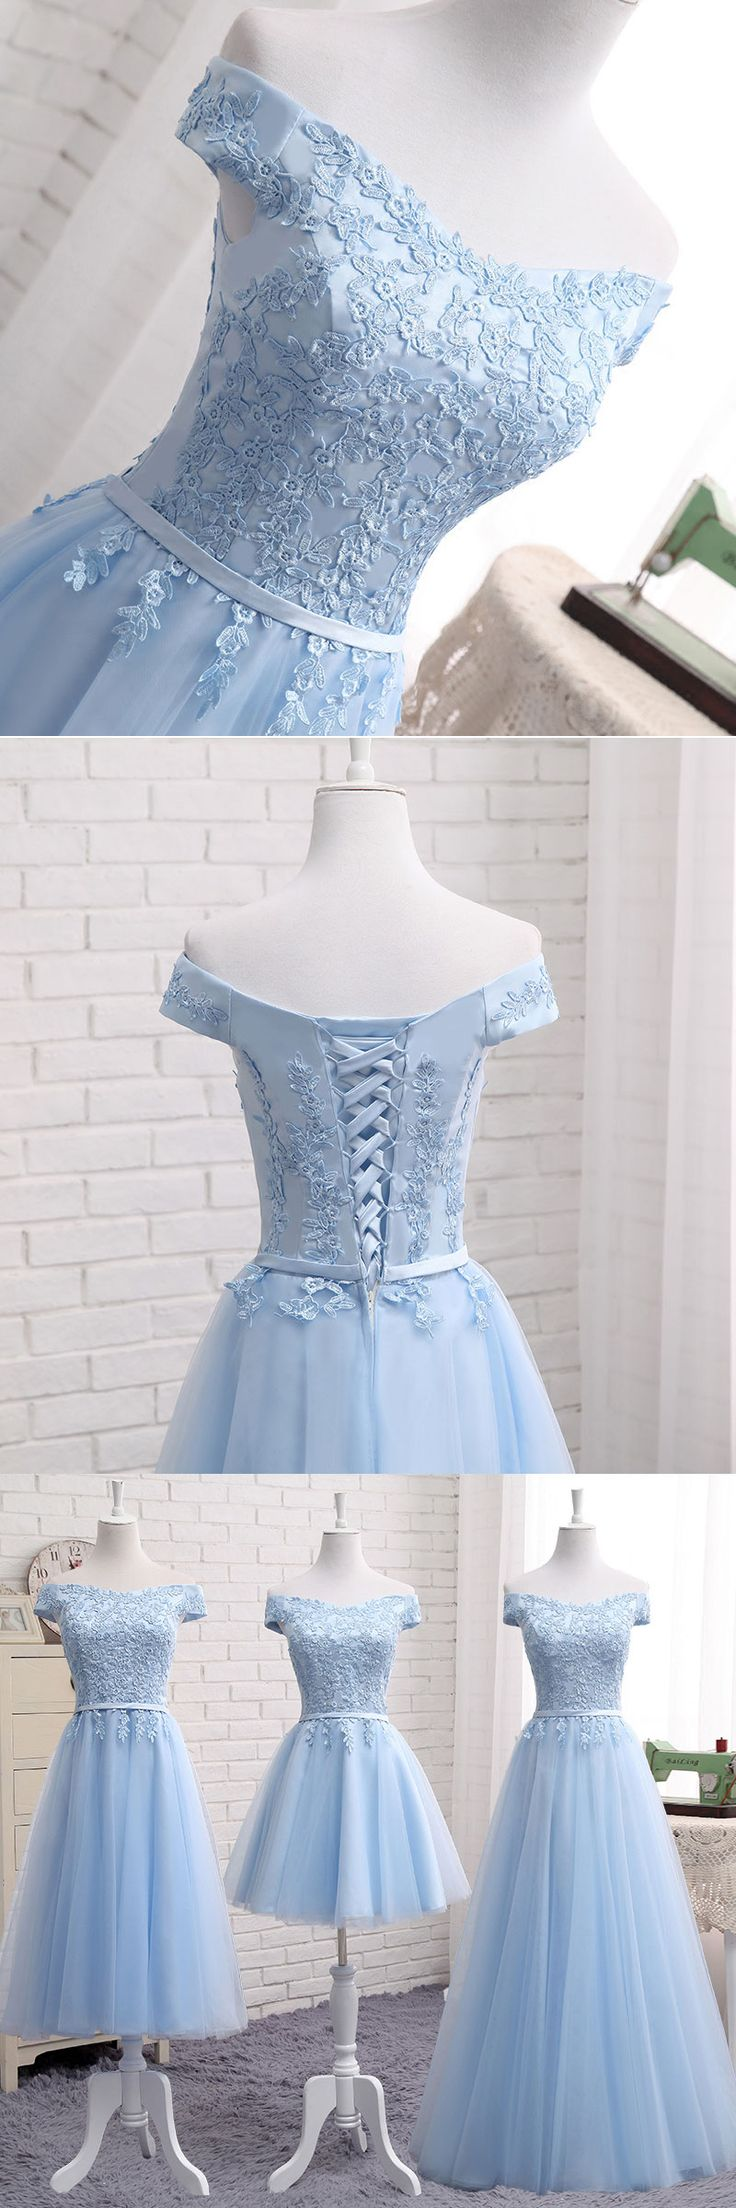 of girl   Cute a line lace off shoulder prom dress, lace evening dresses   Online Store Powered by Storenvy